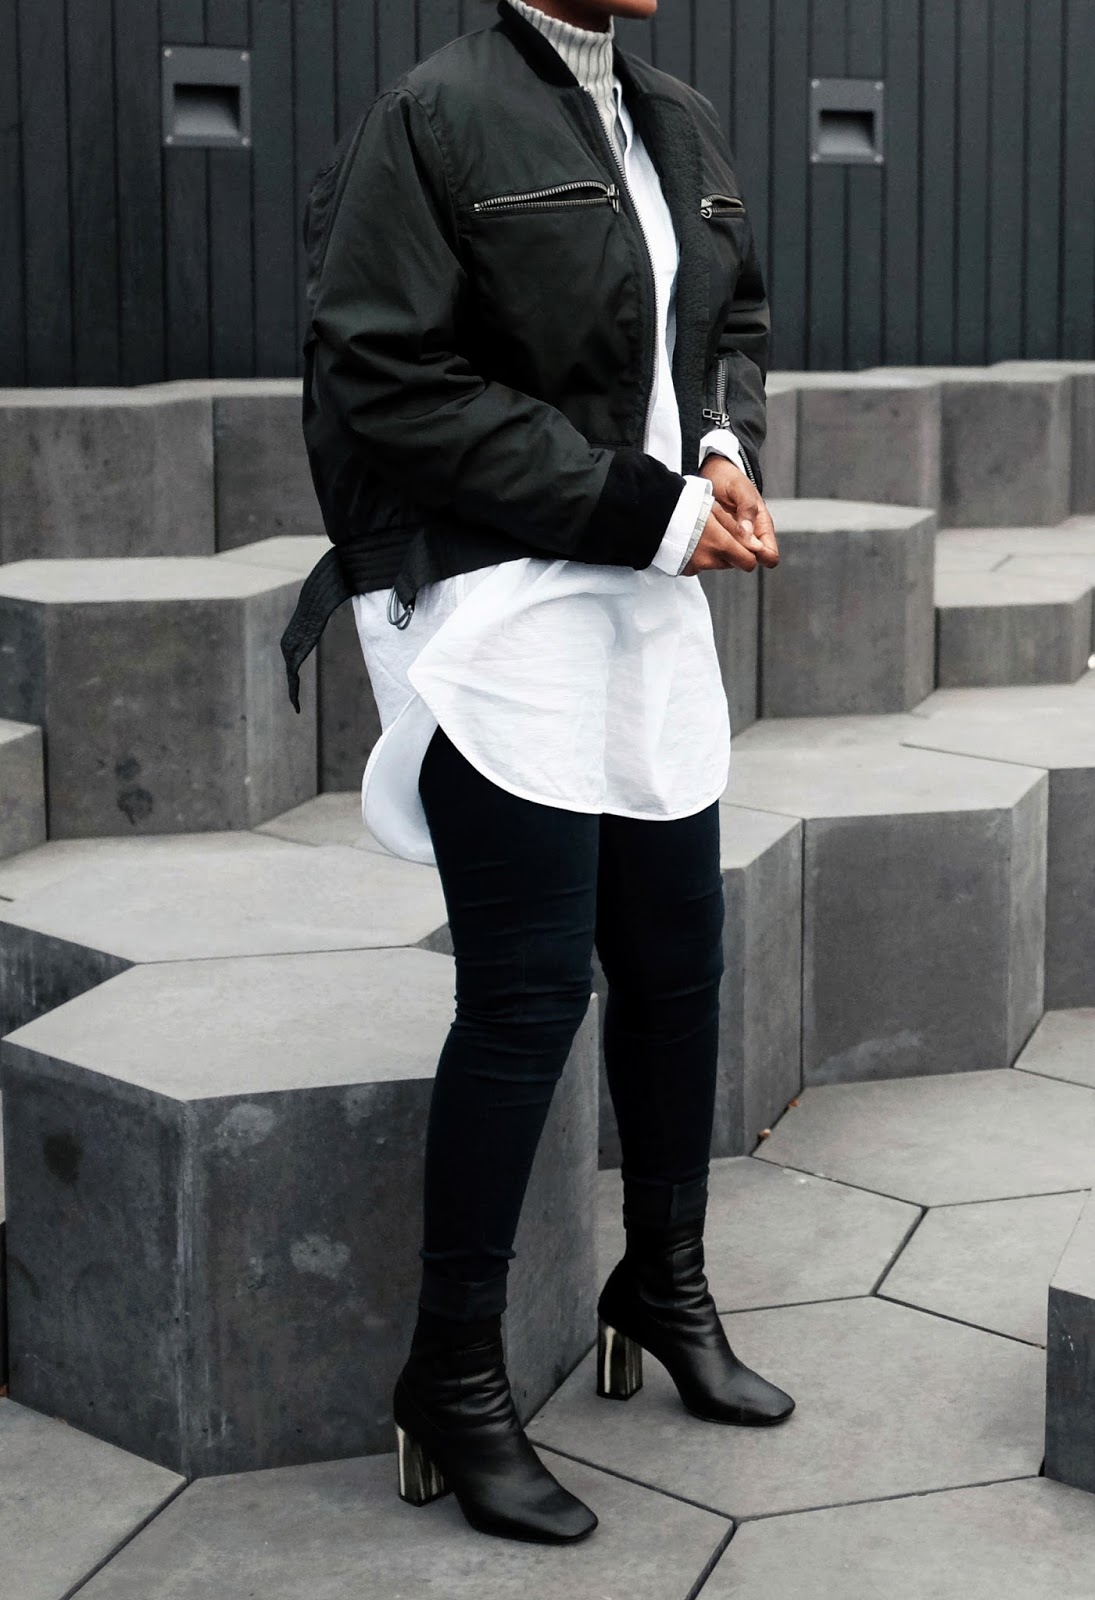 H&M Trend Bomber Jacket Grey Ribbed Missguided Jumper  White Oversized Weekday Shirt Black Topshop MUSE Bone Heel Boots